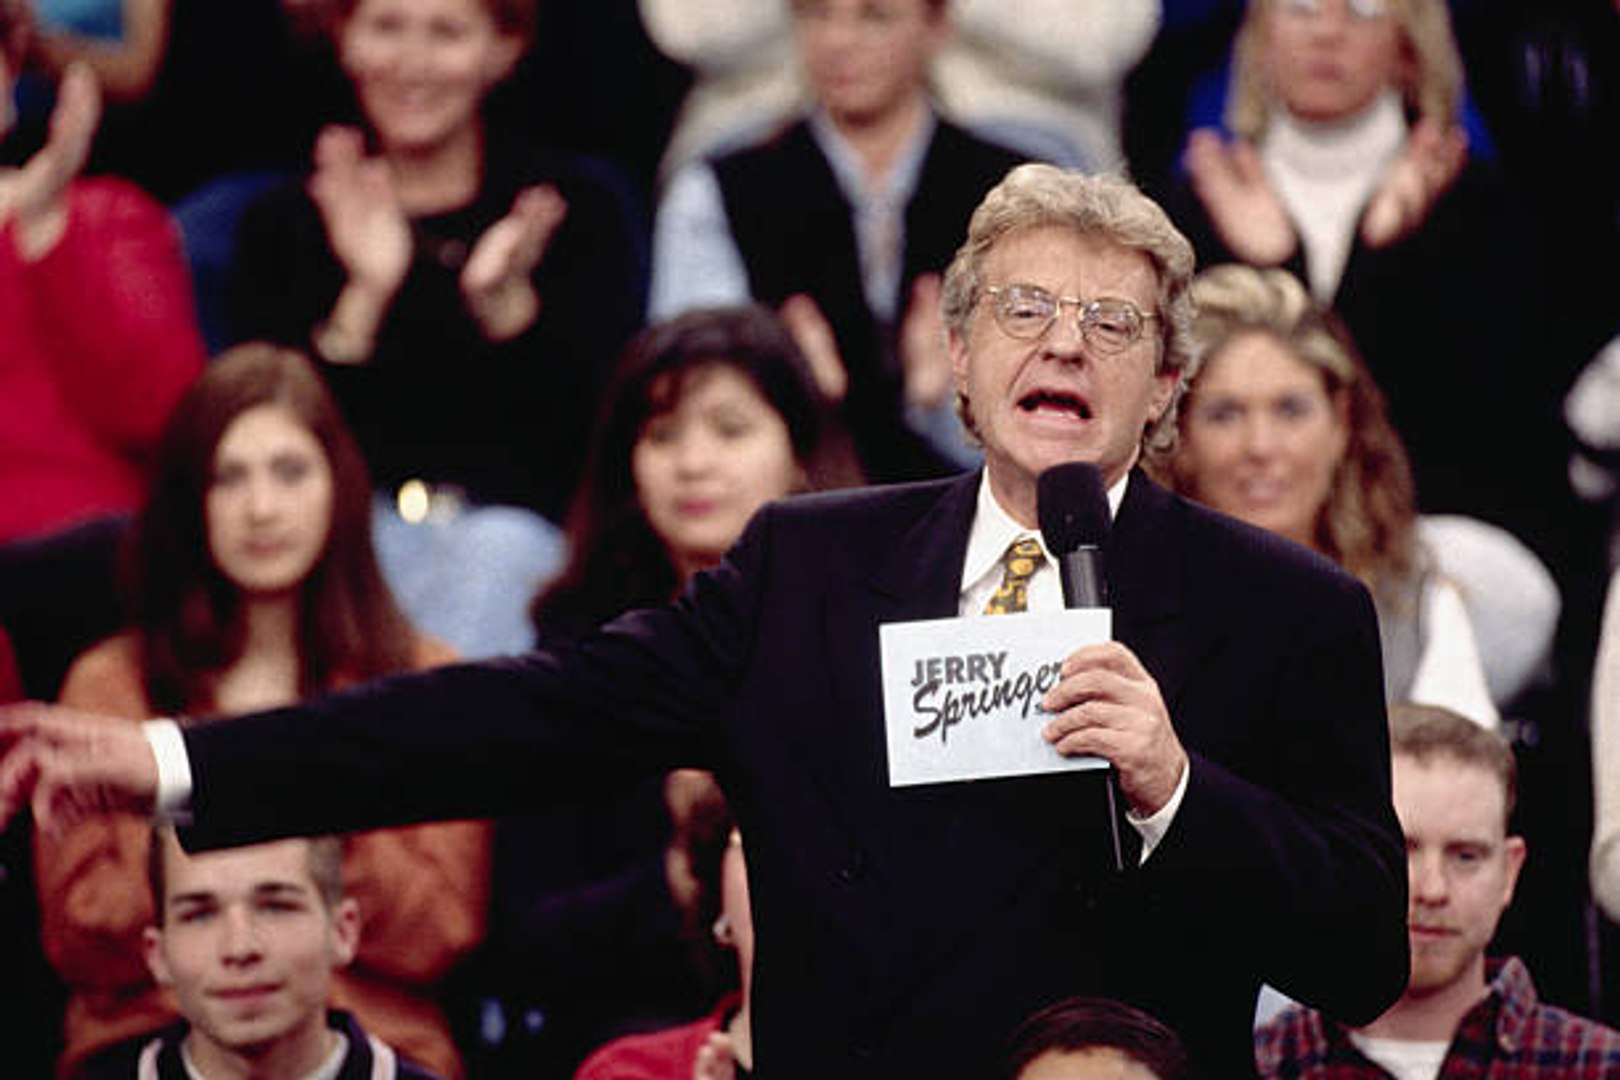 'The Jerry Springer Show' Canceled After 27 Seasons